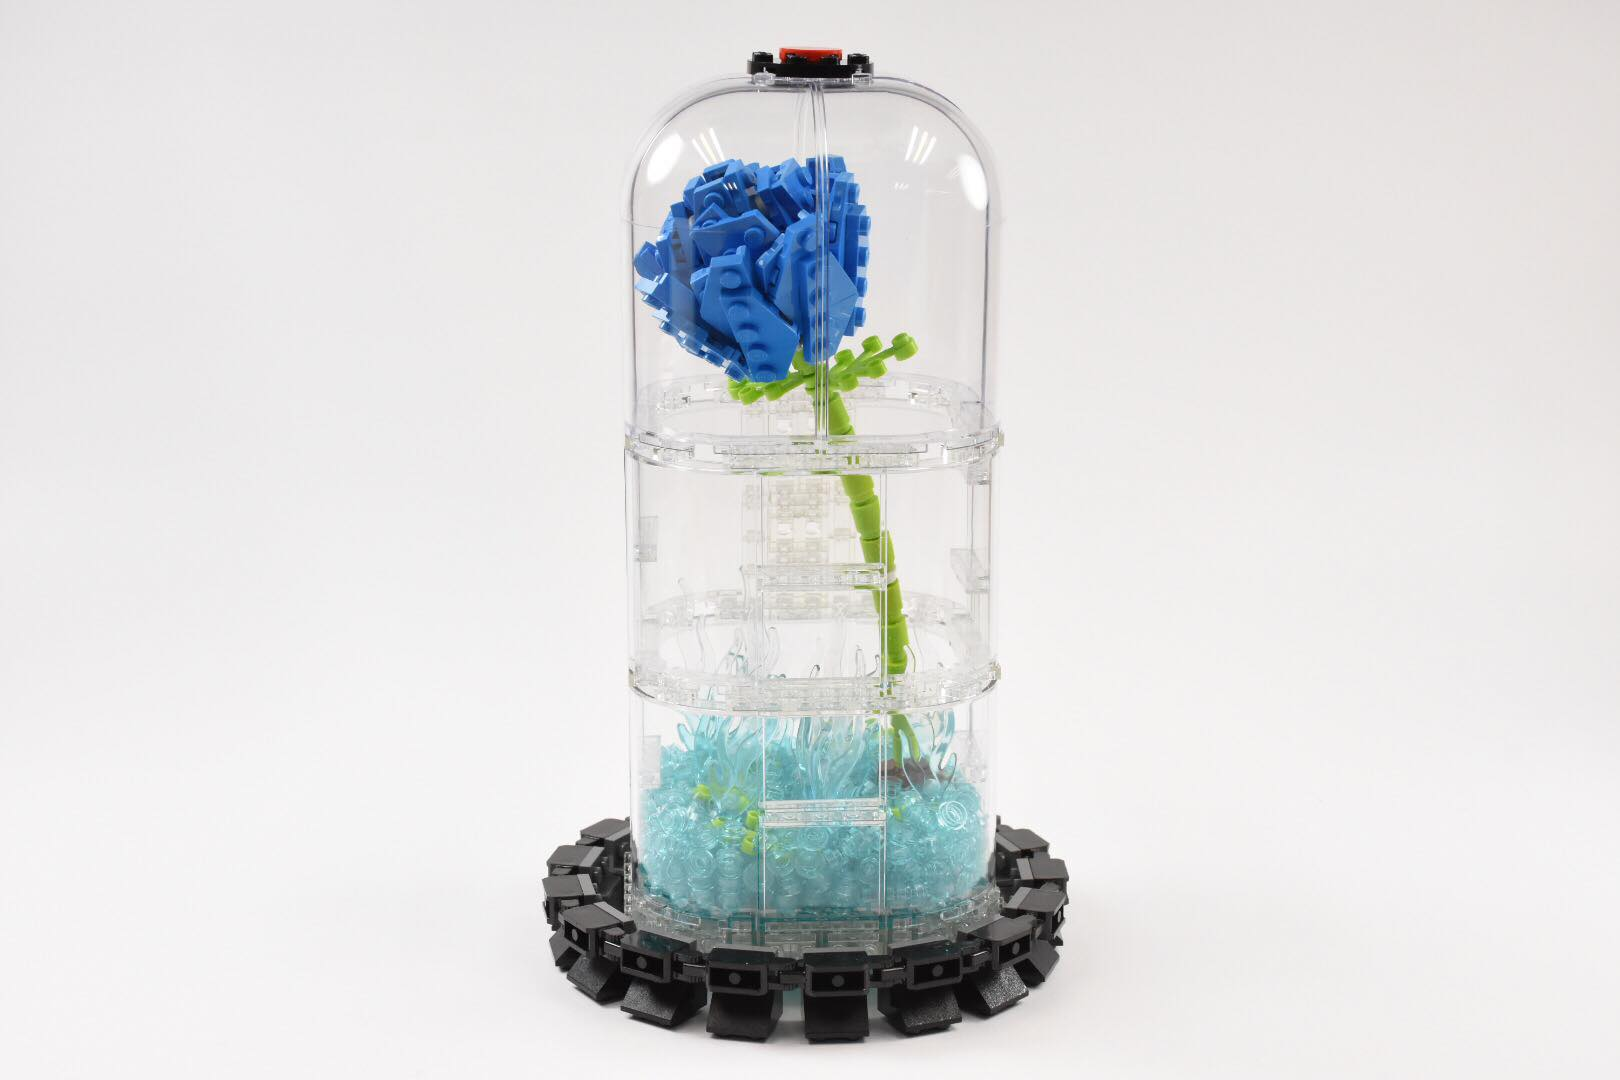 LEGO Blue Rose by Chakhei Mok